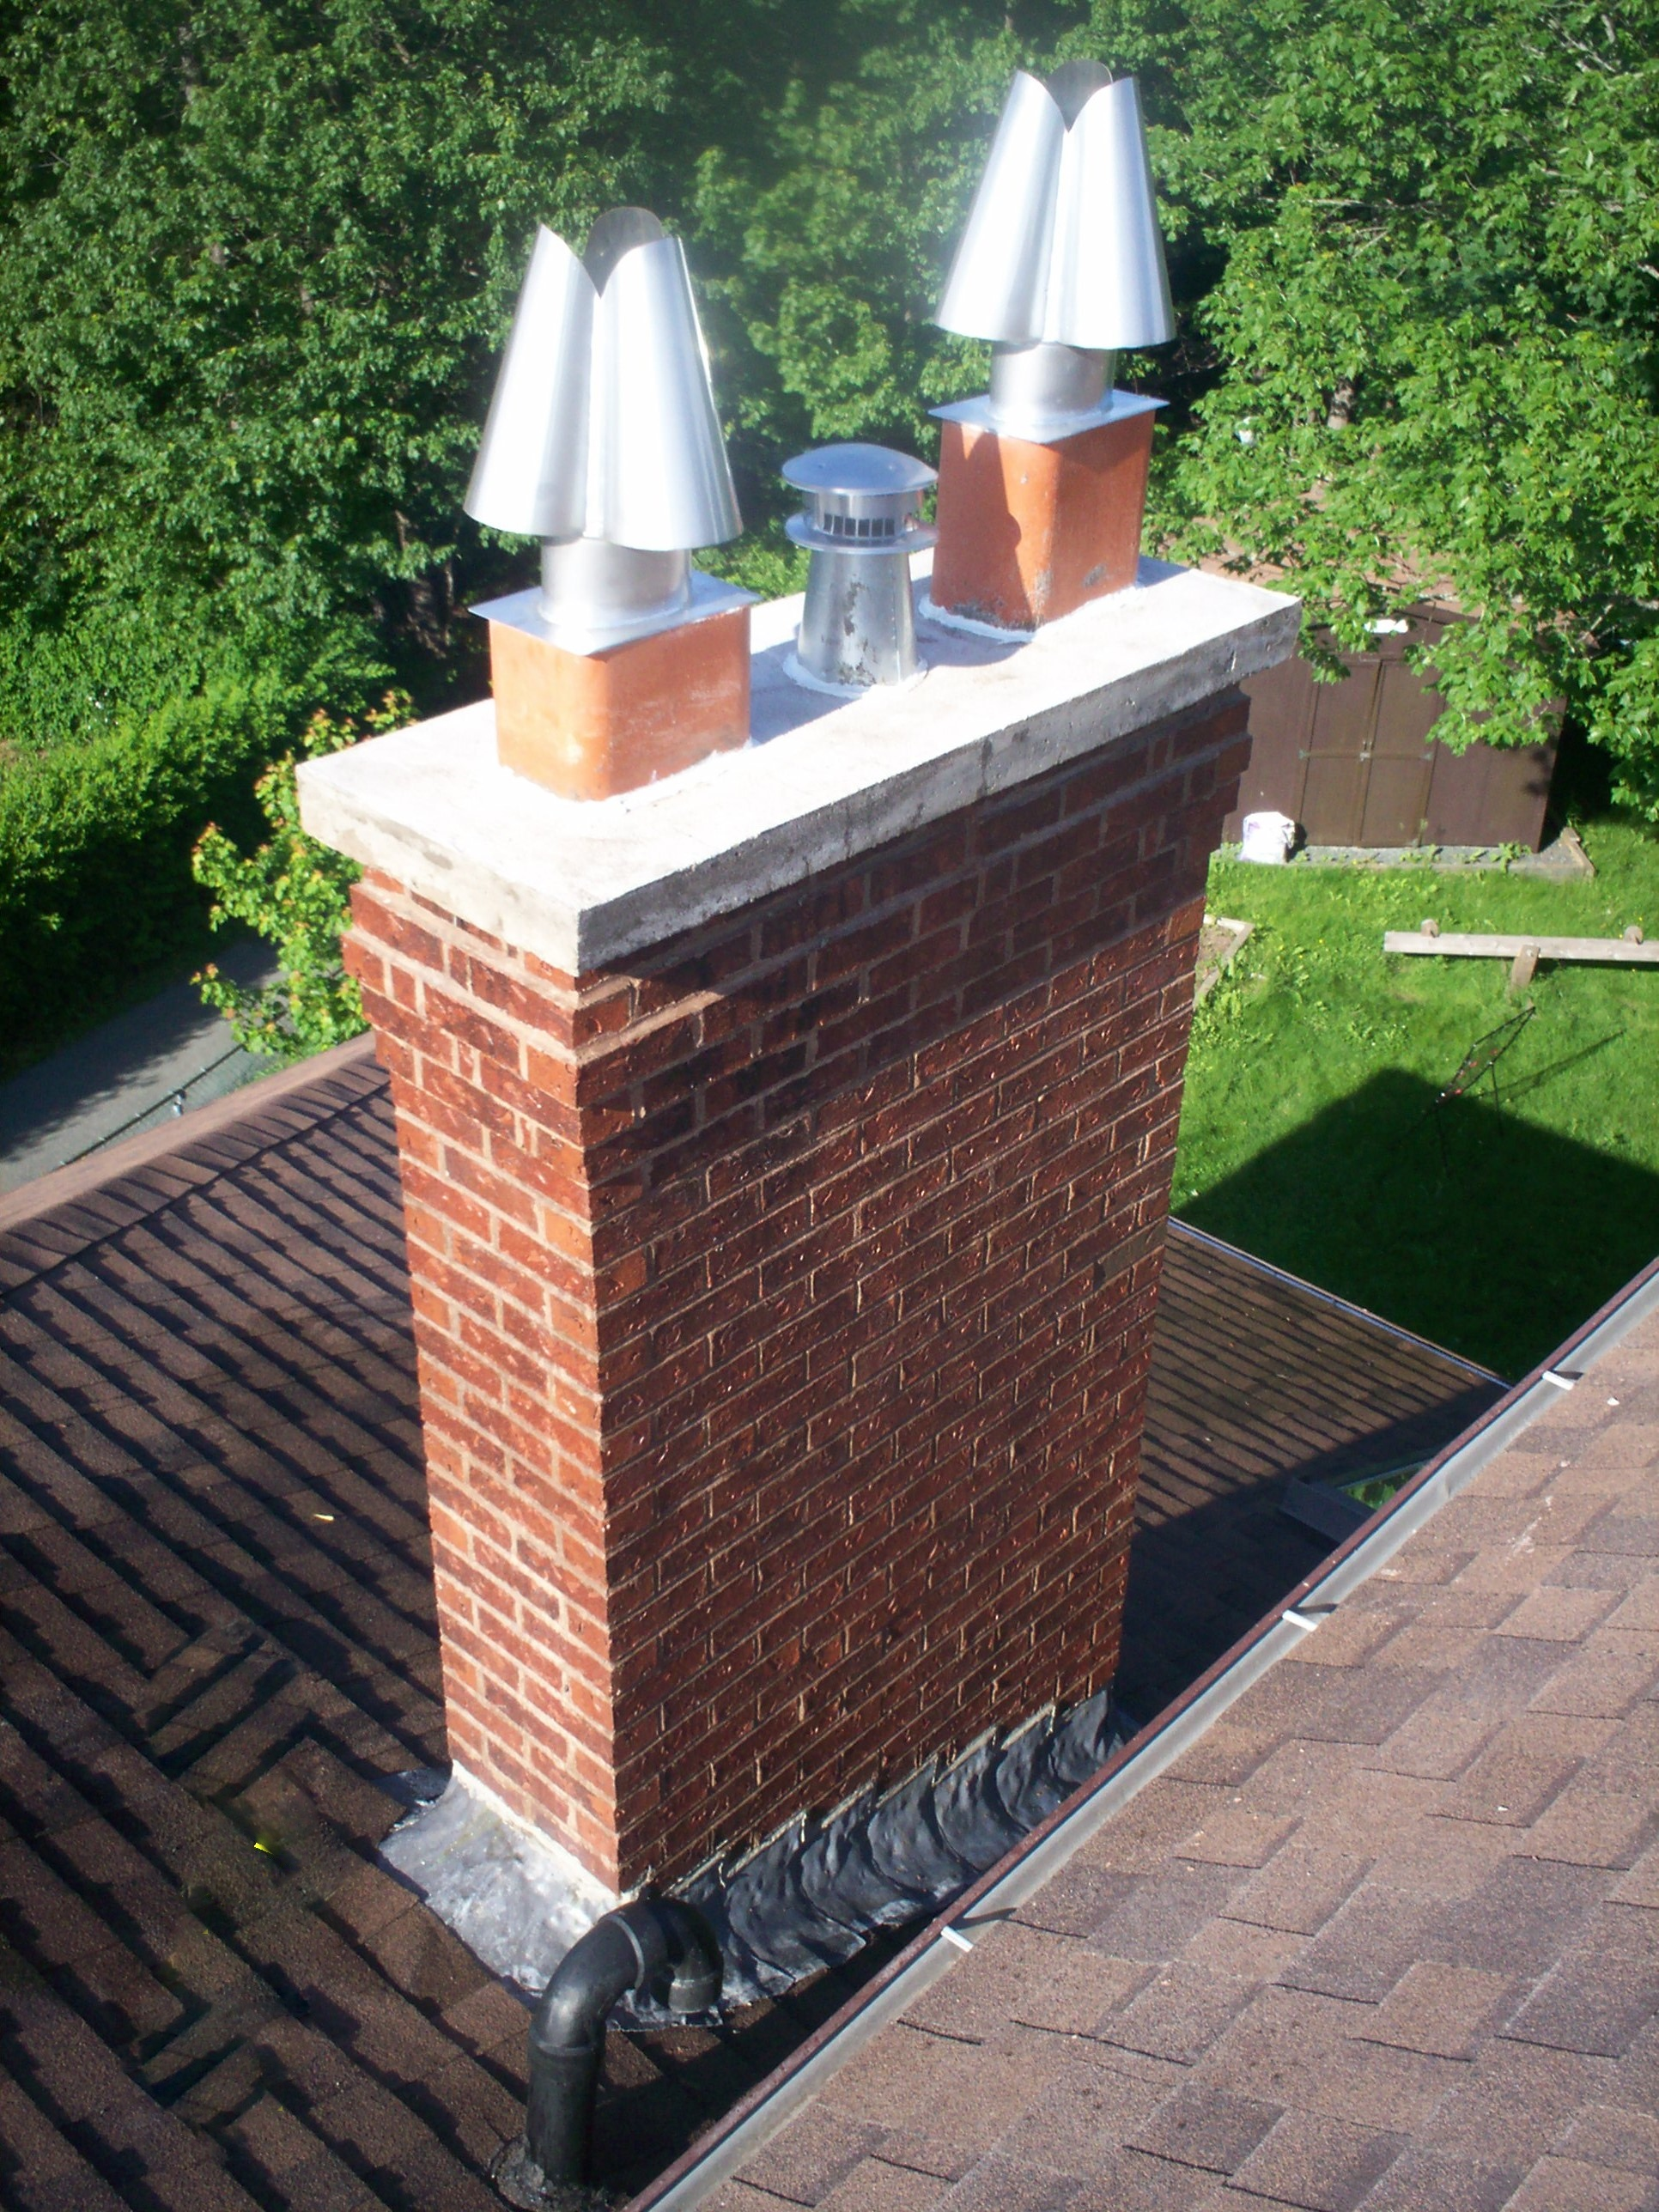 image of chimney-chimney repair services completed in Halifax-Dartmouth Regional Municipality, NS by Pro Chimney Services based in Halifax NS servicing all of the Halifax-Dartmouth Regional Municipality, Bedford, Sackville, Mount Uniacke, Windsor, Hantsport , Wolfville, Kentville, Chester, Mahone Bay, Lunenburg, Bridgewater, Liverpool, Fall River, Wellington, Enfield, Elmsdale, Brookfield, Truro, Musquodoboit Harbour & surrounding areas.